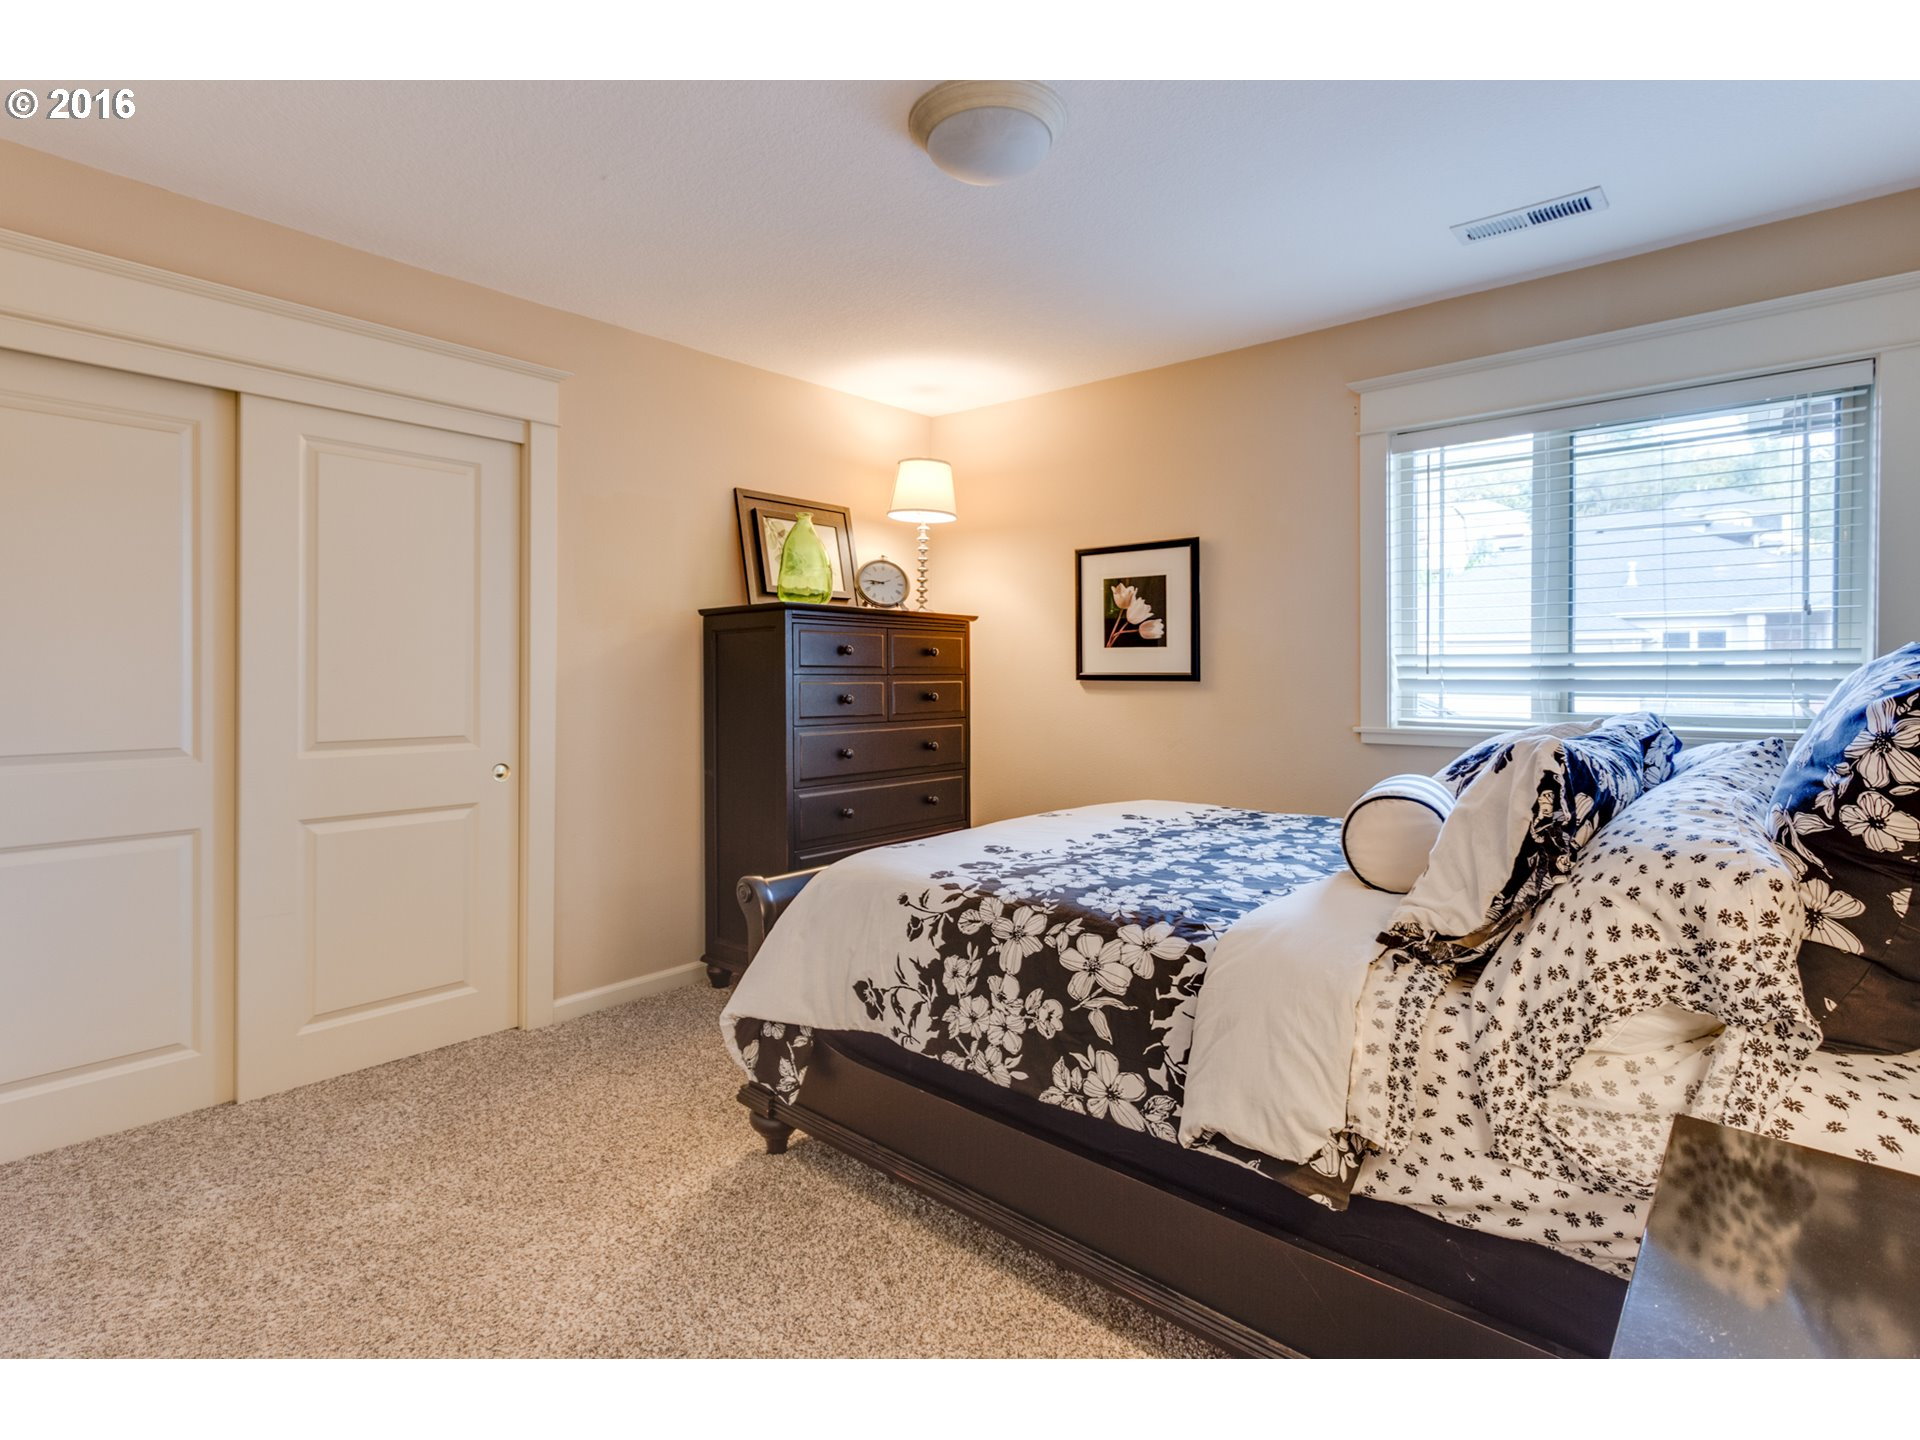 BEDROOM MATT MORRIS 360-773-7333